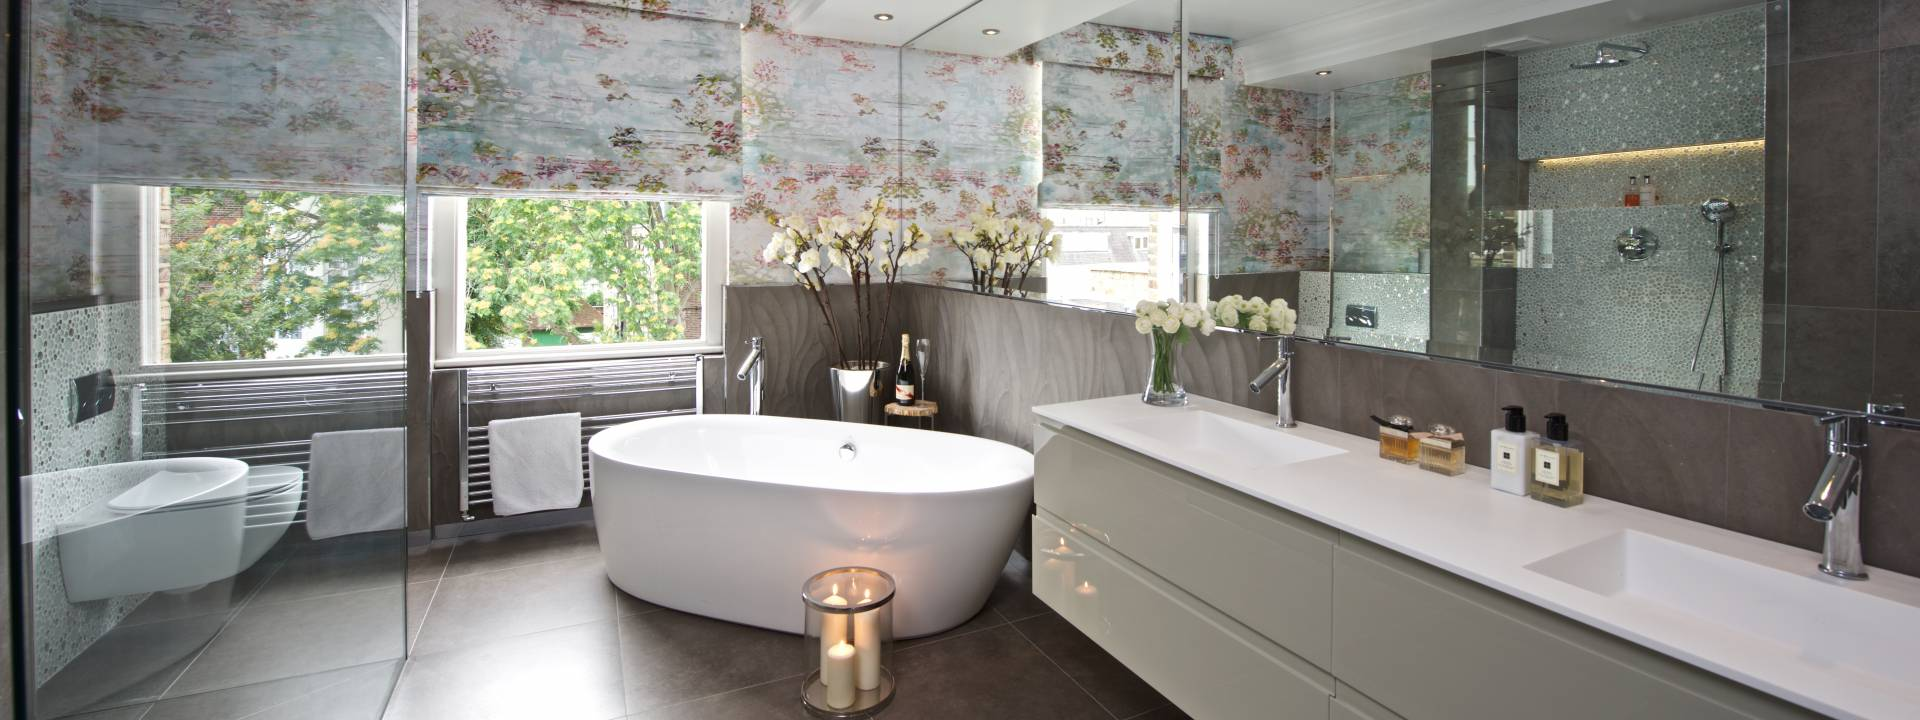 Exquisite Town-house.  Luxury bathroom. Taylor Interiors.